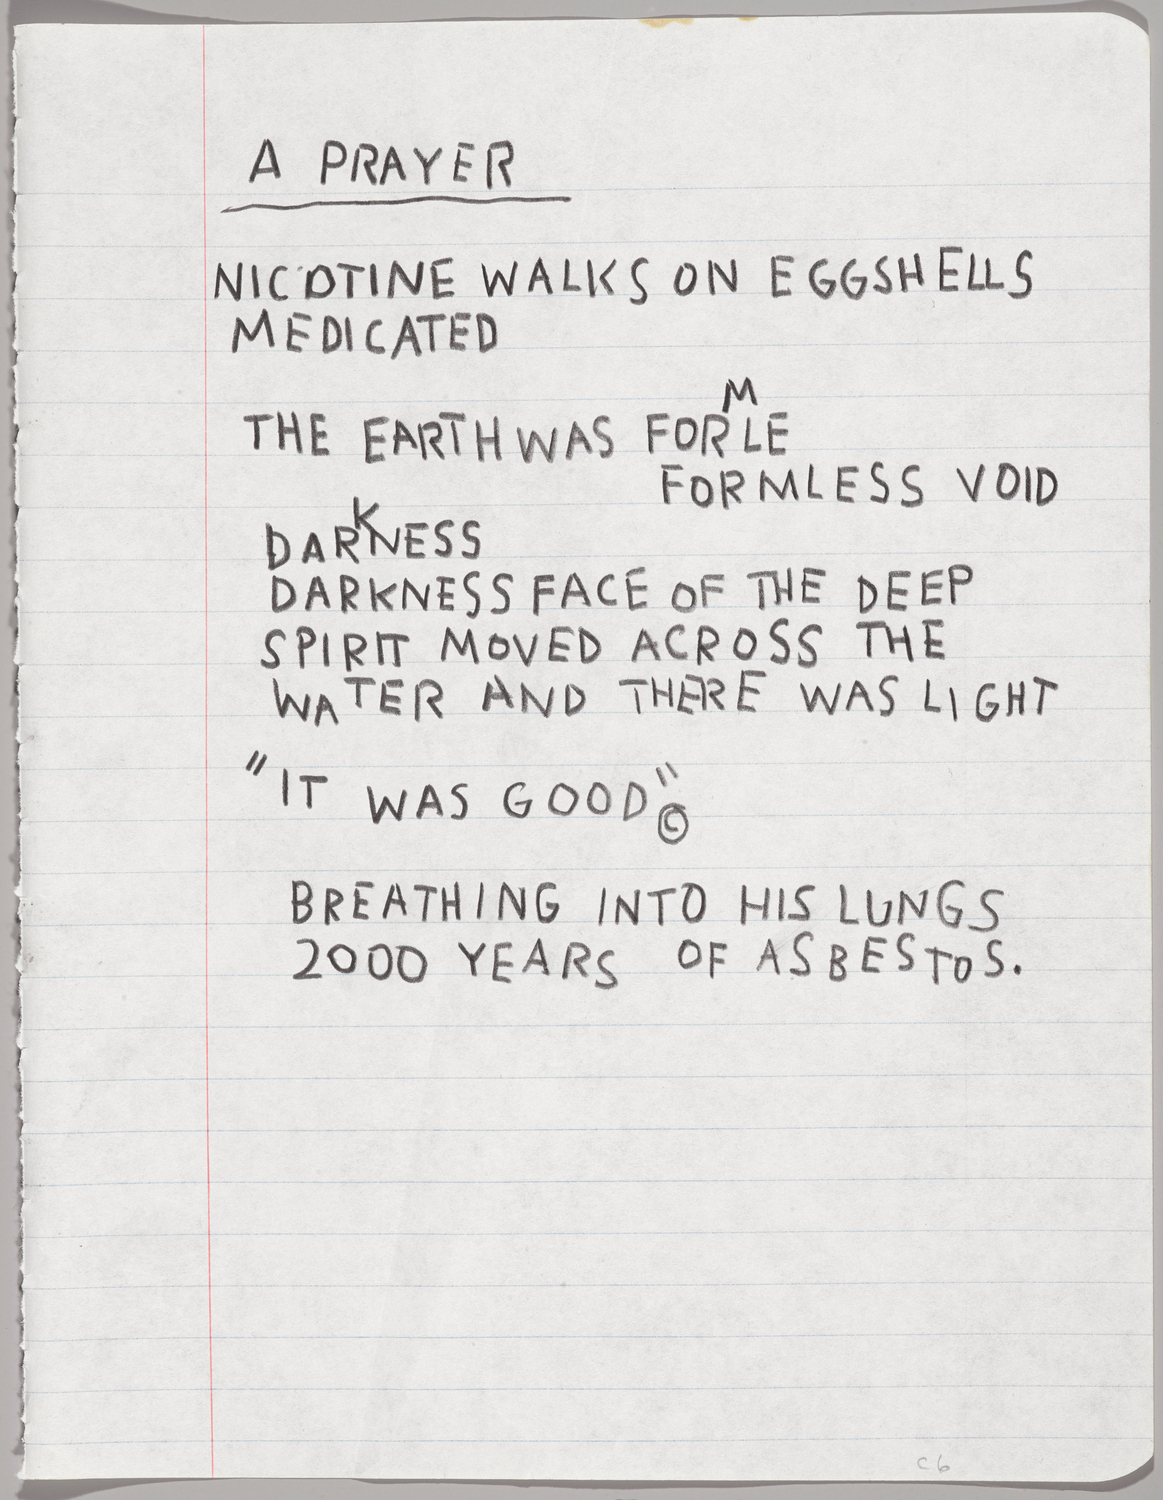 Jean-Michel Basquiat, Untitled Notebook Page (c. 1987), wax crayon on ruled notebook paper, 9 5/8 x 7 5/8 in (24.5 x 19.4 cm), collection of Larry Warsh (photo by Sarah DeSantis, Brooklyn Museum, © Estate of Jean-Michel Basquiat, all rights reserved, licensed by Artestar, New York)